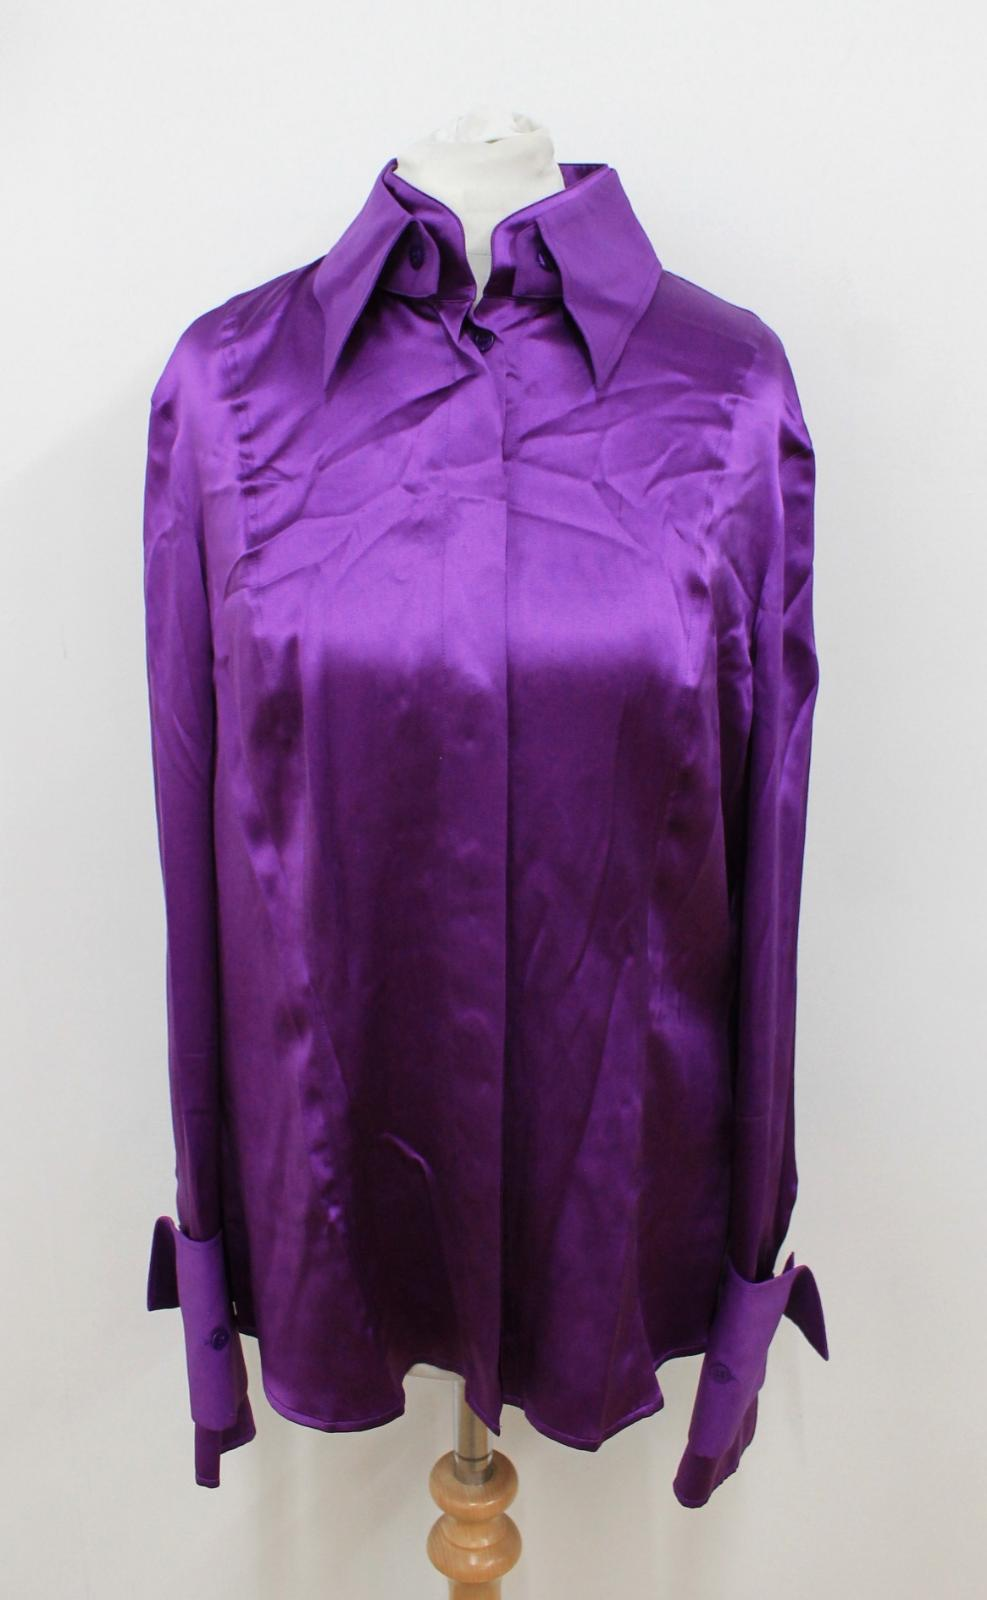 Silk Uk12 Size Ladies Long Collared Blended Escada De38 Purple Shirt Sleeved E7TvqPw8w